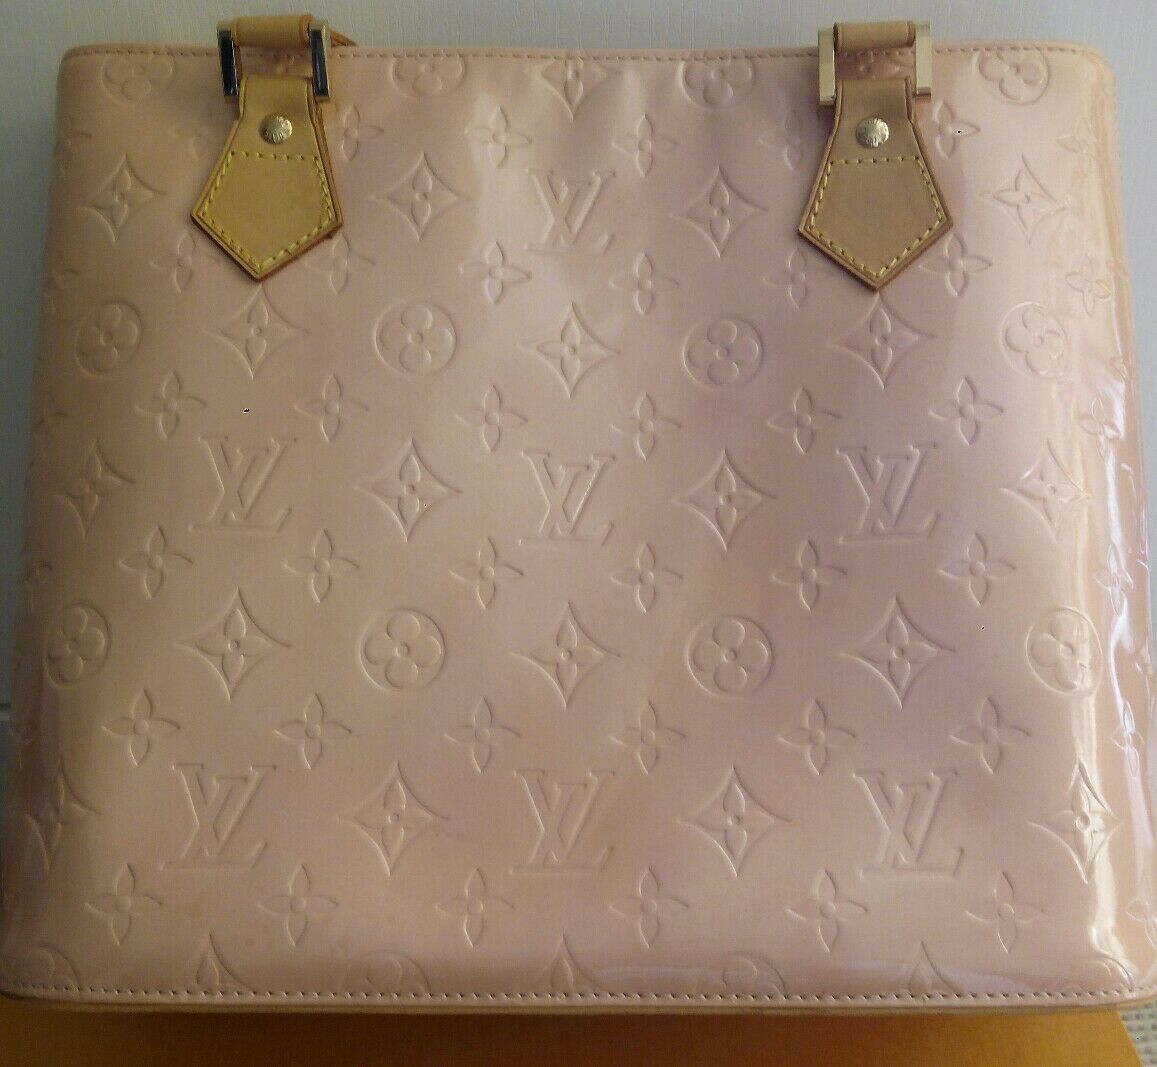 Louis Vuitton Tasche Houston Monogramm Vernis Light Rose - 420.00,Kaufpreis 420,datum 01.07.2020 22:12:37,Website ebay.de